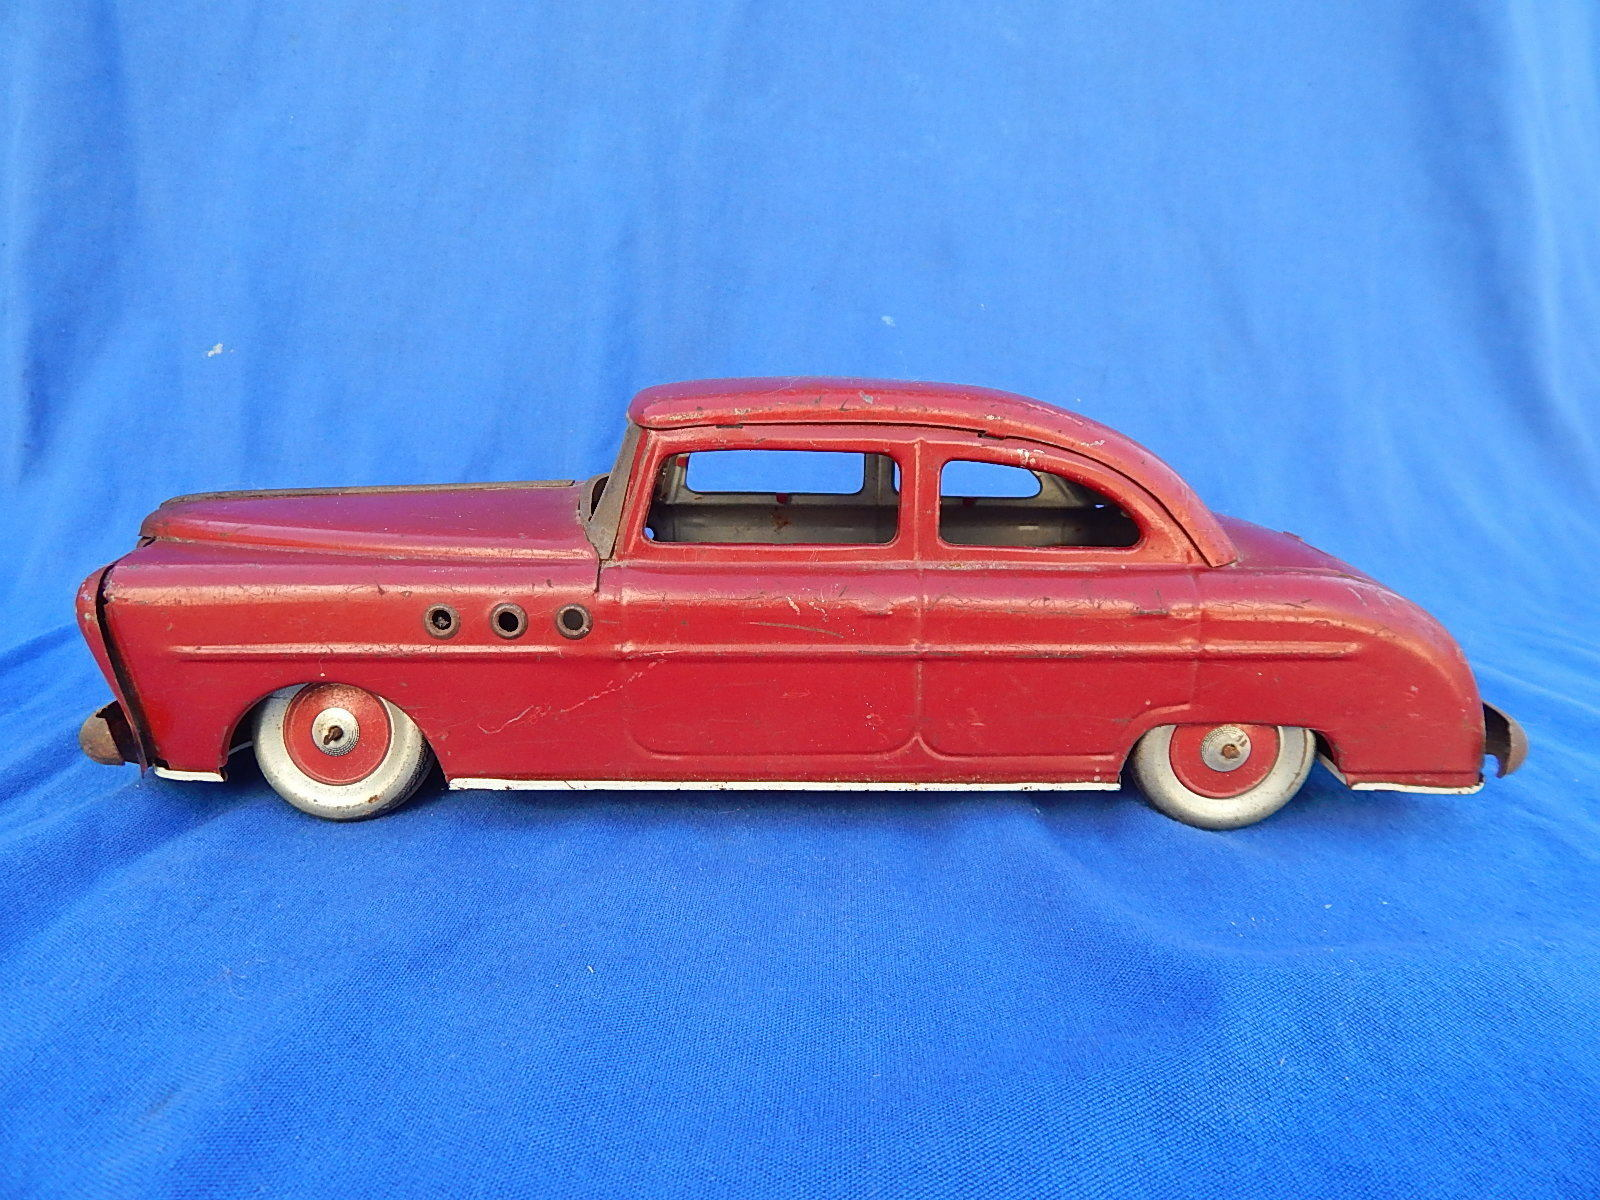 JOUET   Toy - ML MARTINAN & LARNAUDE - VOITURE - MECANIQUE   Mechanical - TOP